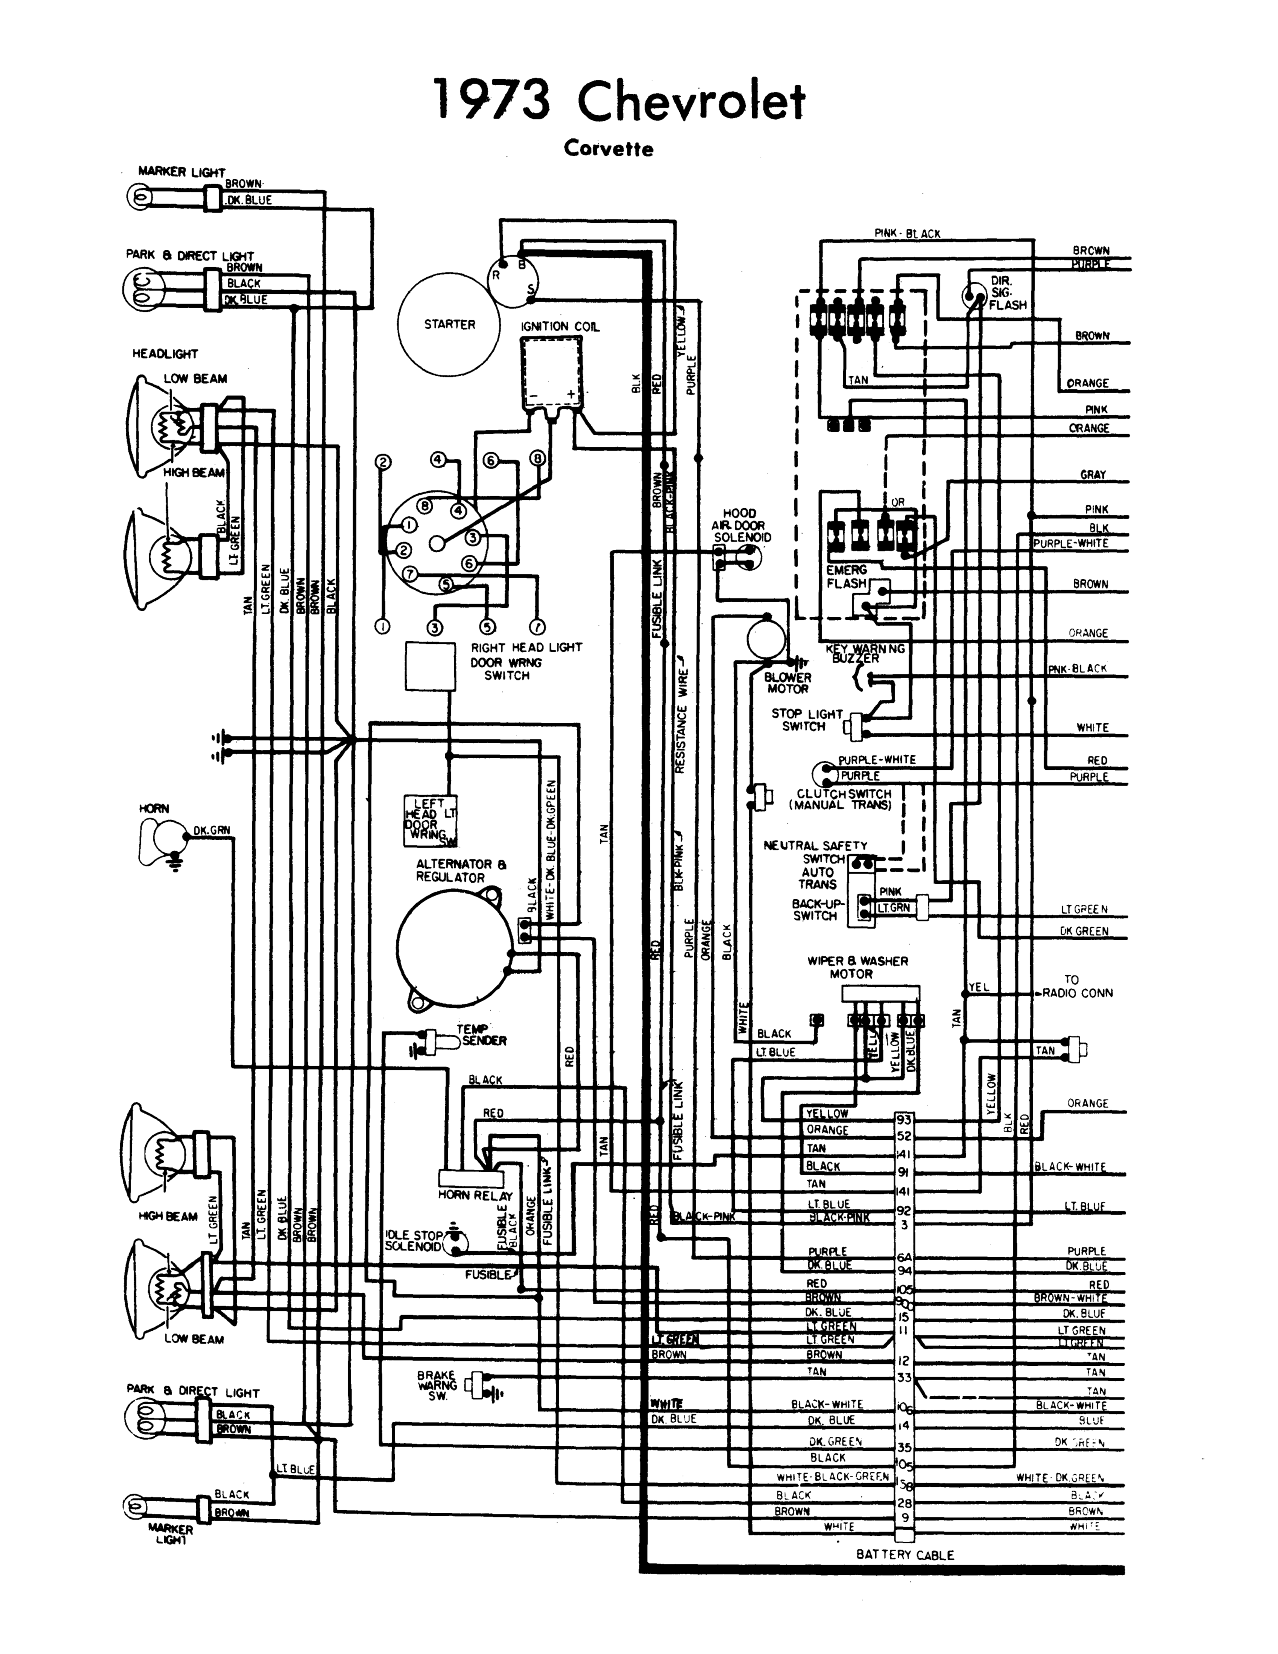 hight resolution of wiring diagram 1973 corvette chevy corvette 1973 wiring diagrams 1974 corvette engine wiring diagram corvette engine wiring diagram